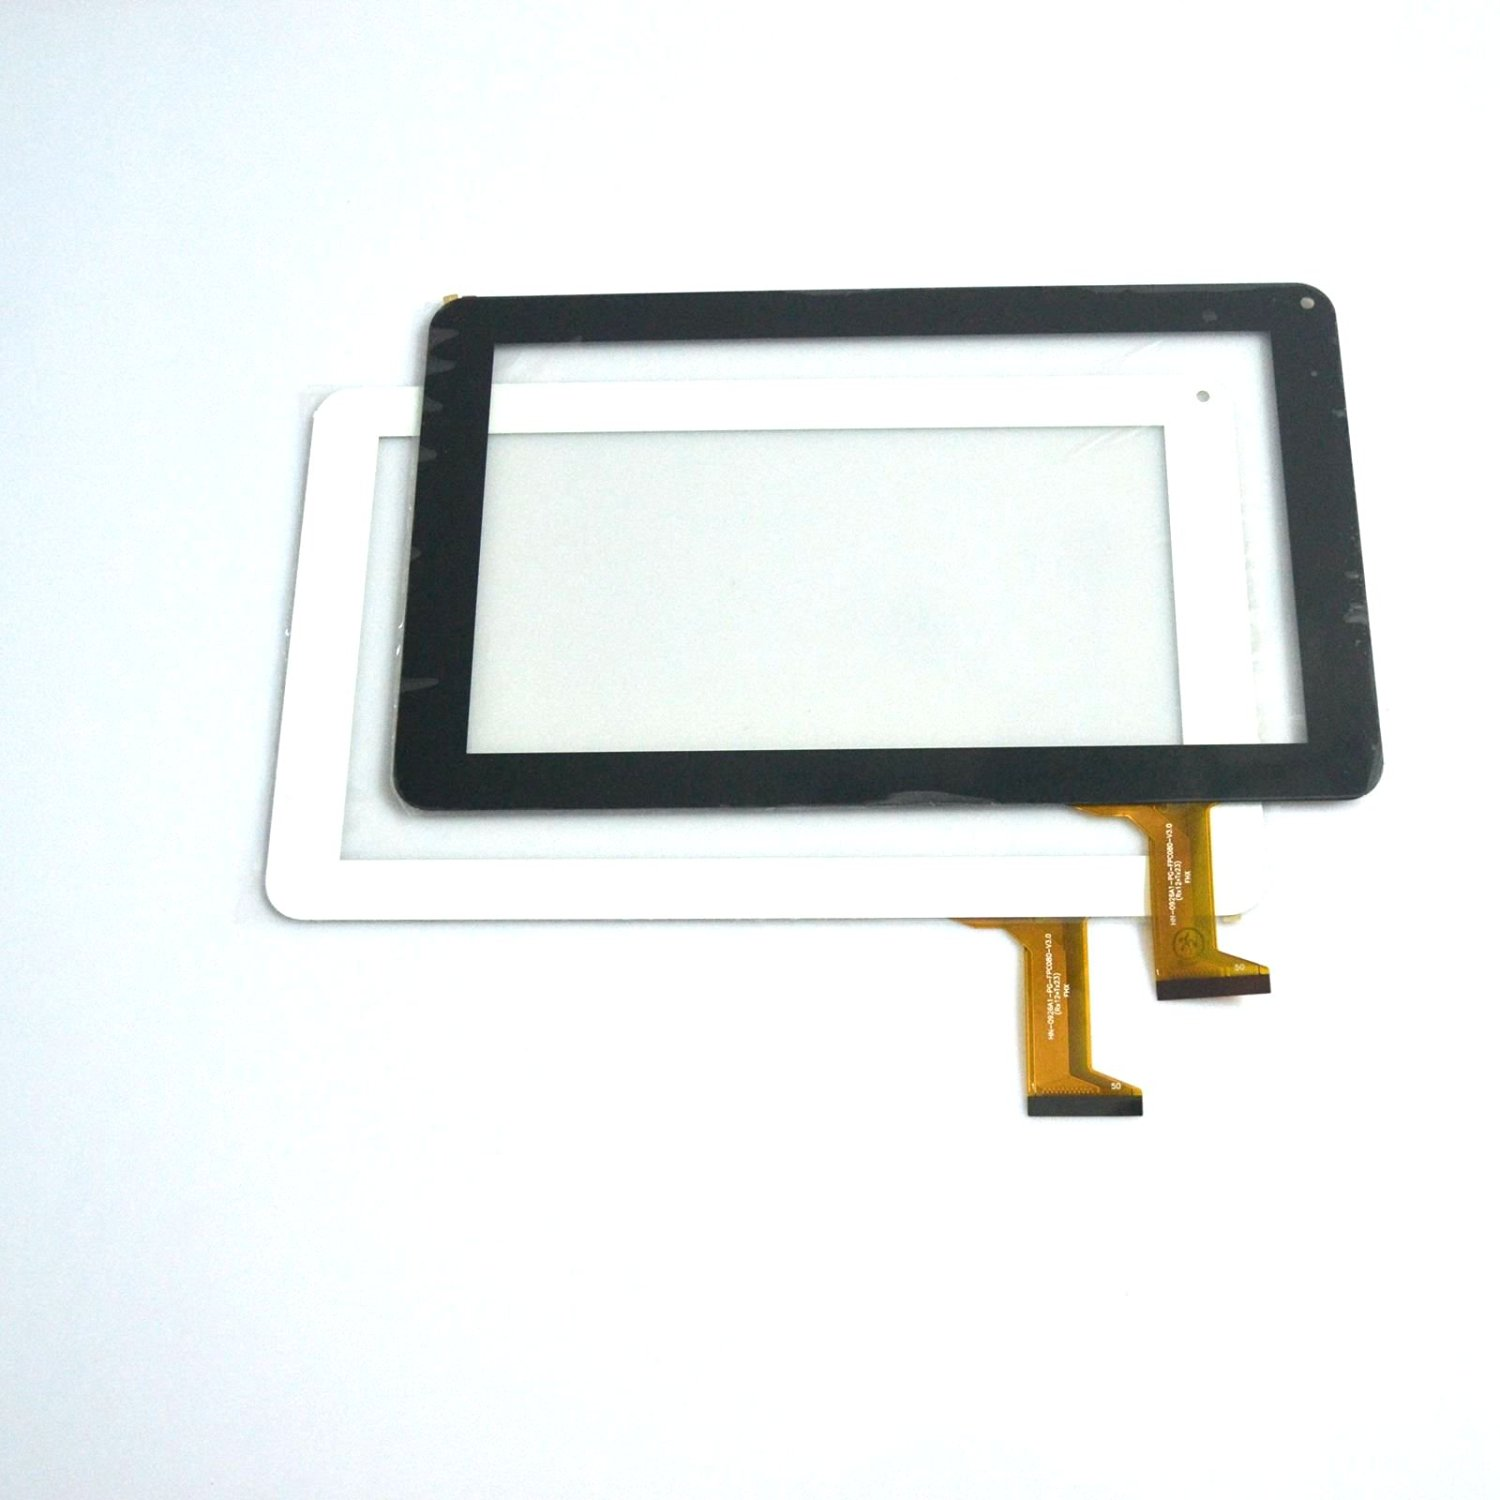 EUTOPING New 9 inch DH-0926A1-PG-FPC080-V3.0 touch screen panel Digitizer for tablet